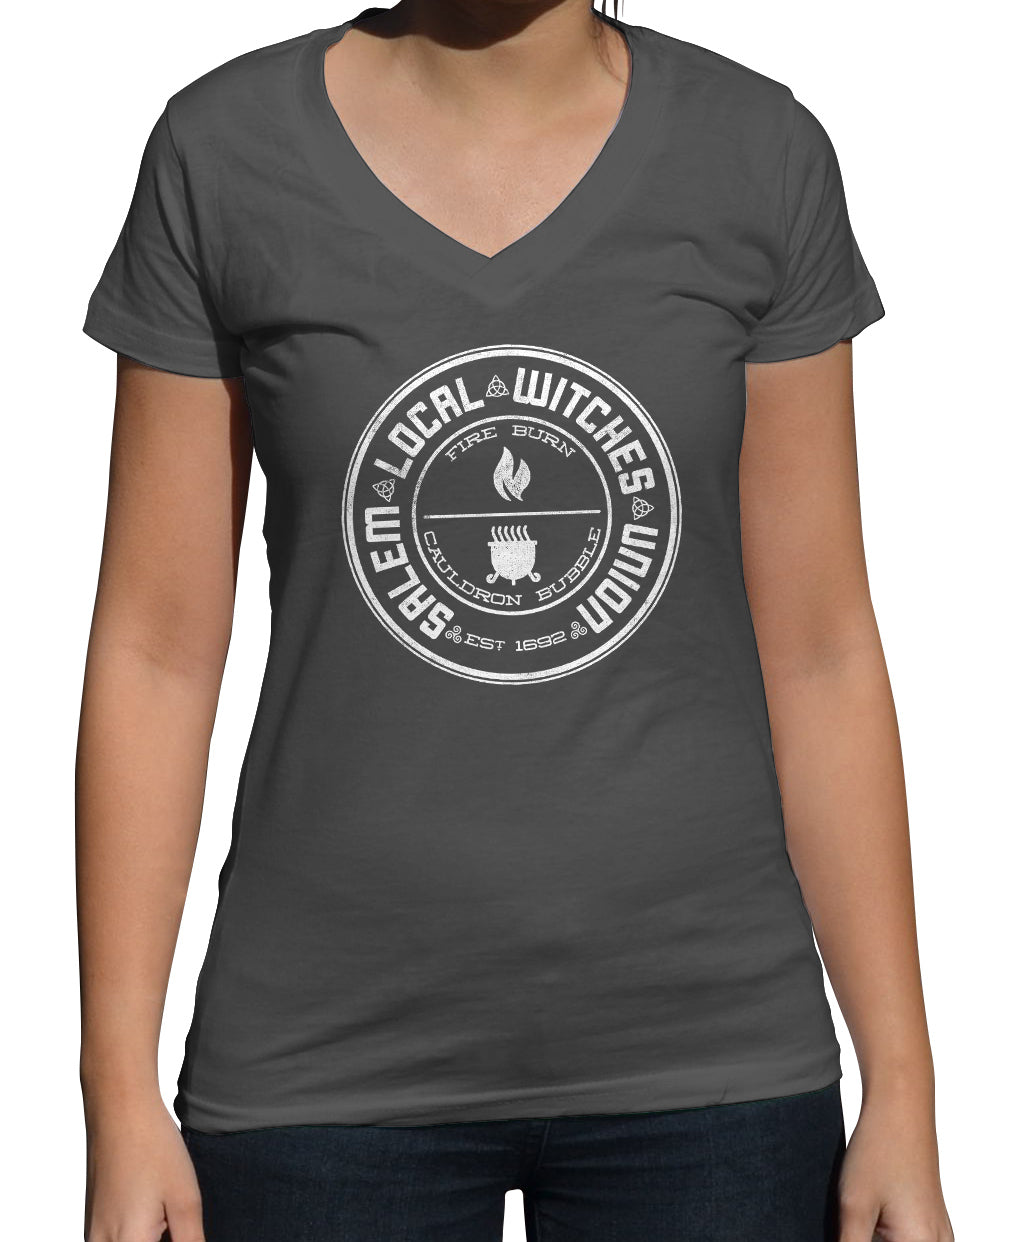 Women's Salem Local Witches Union Vneck T-Shirt